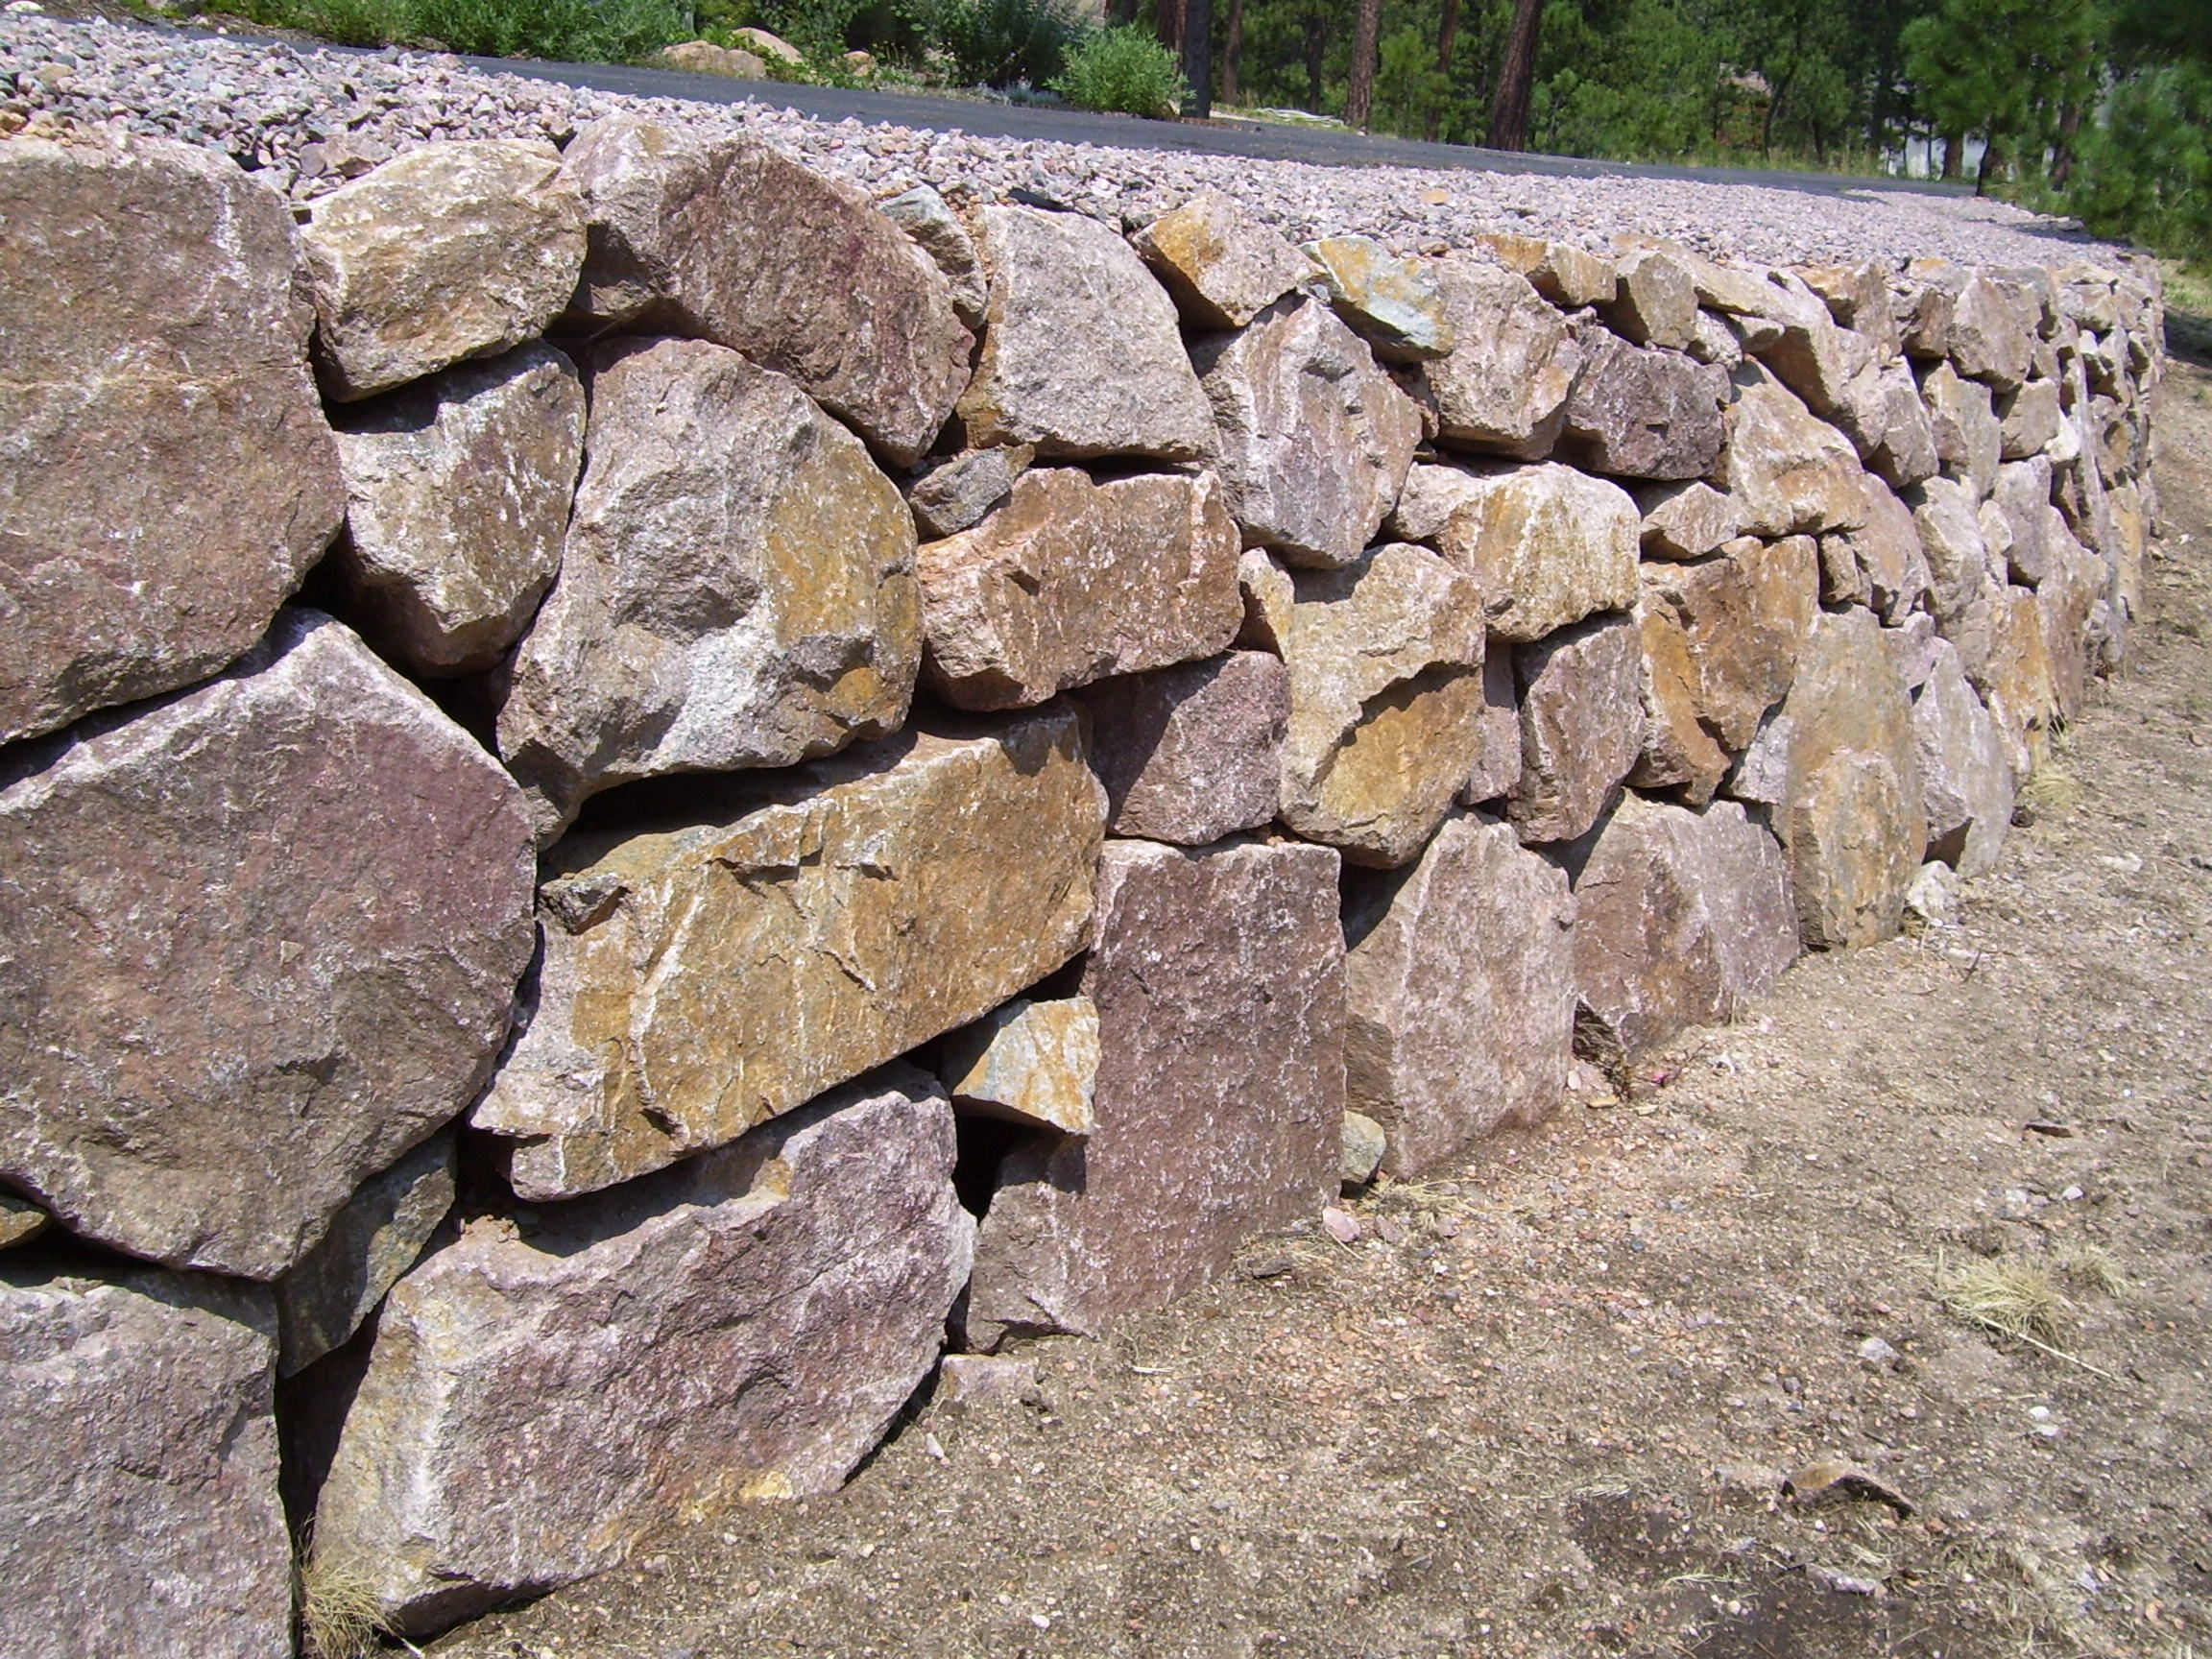 Rock Wall Along Driveway Stone Wall Rock Retaining Wall Natural Stone Wall